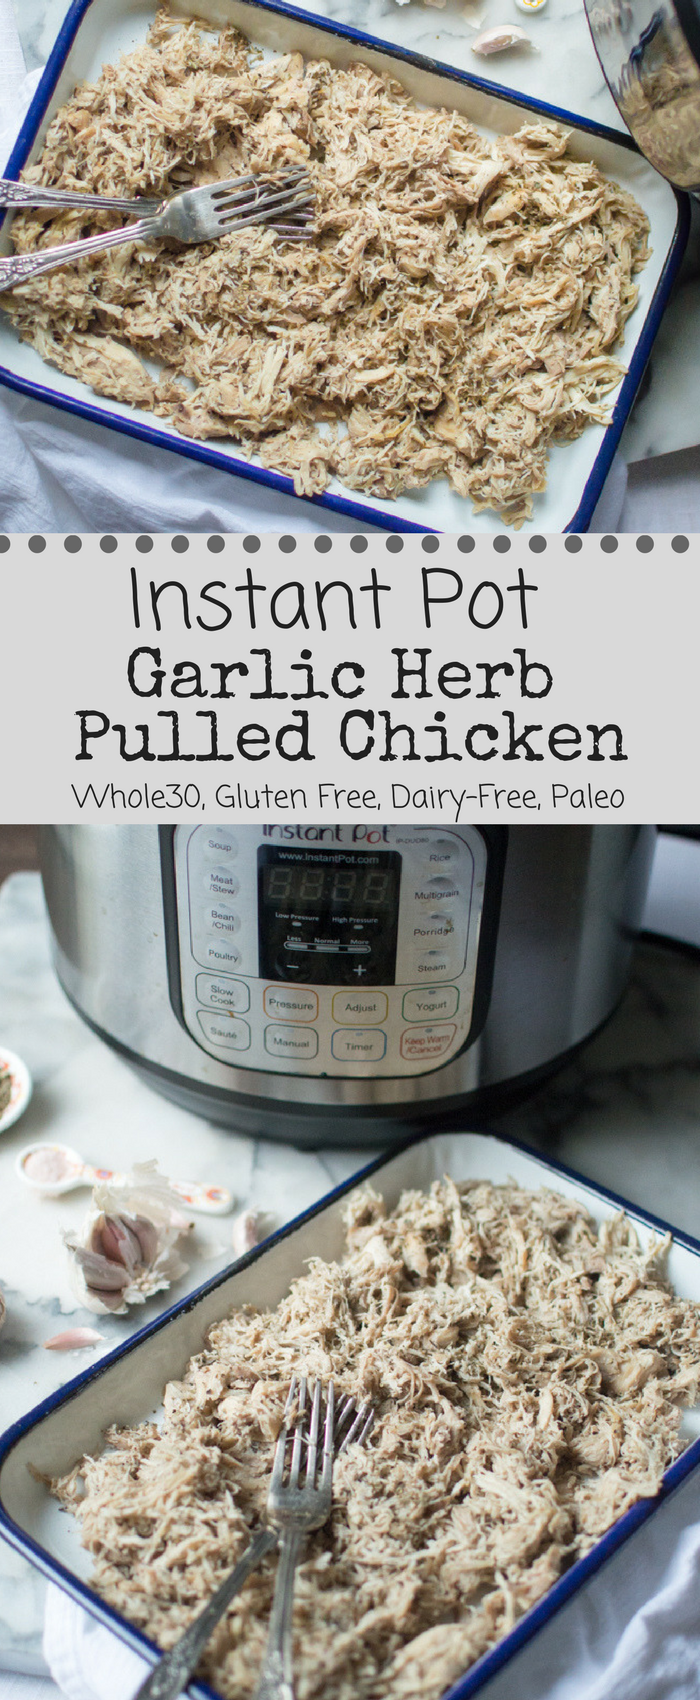 Instant Pot Garlic Herb Pulled Chicken